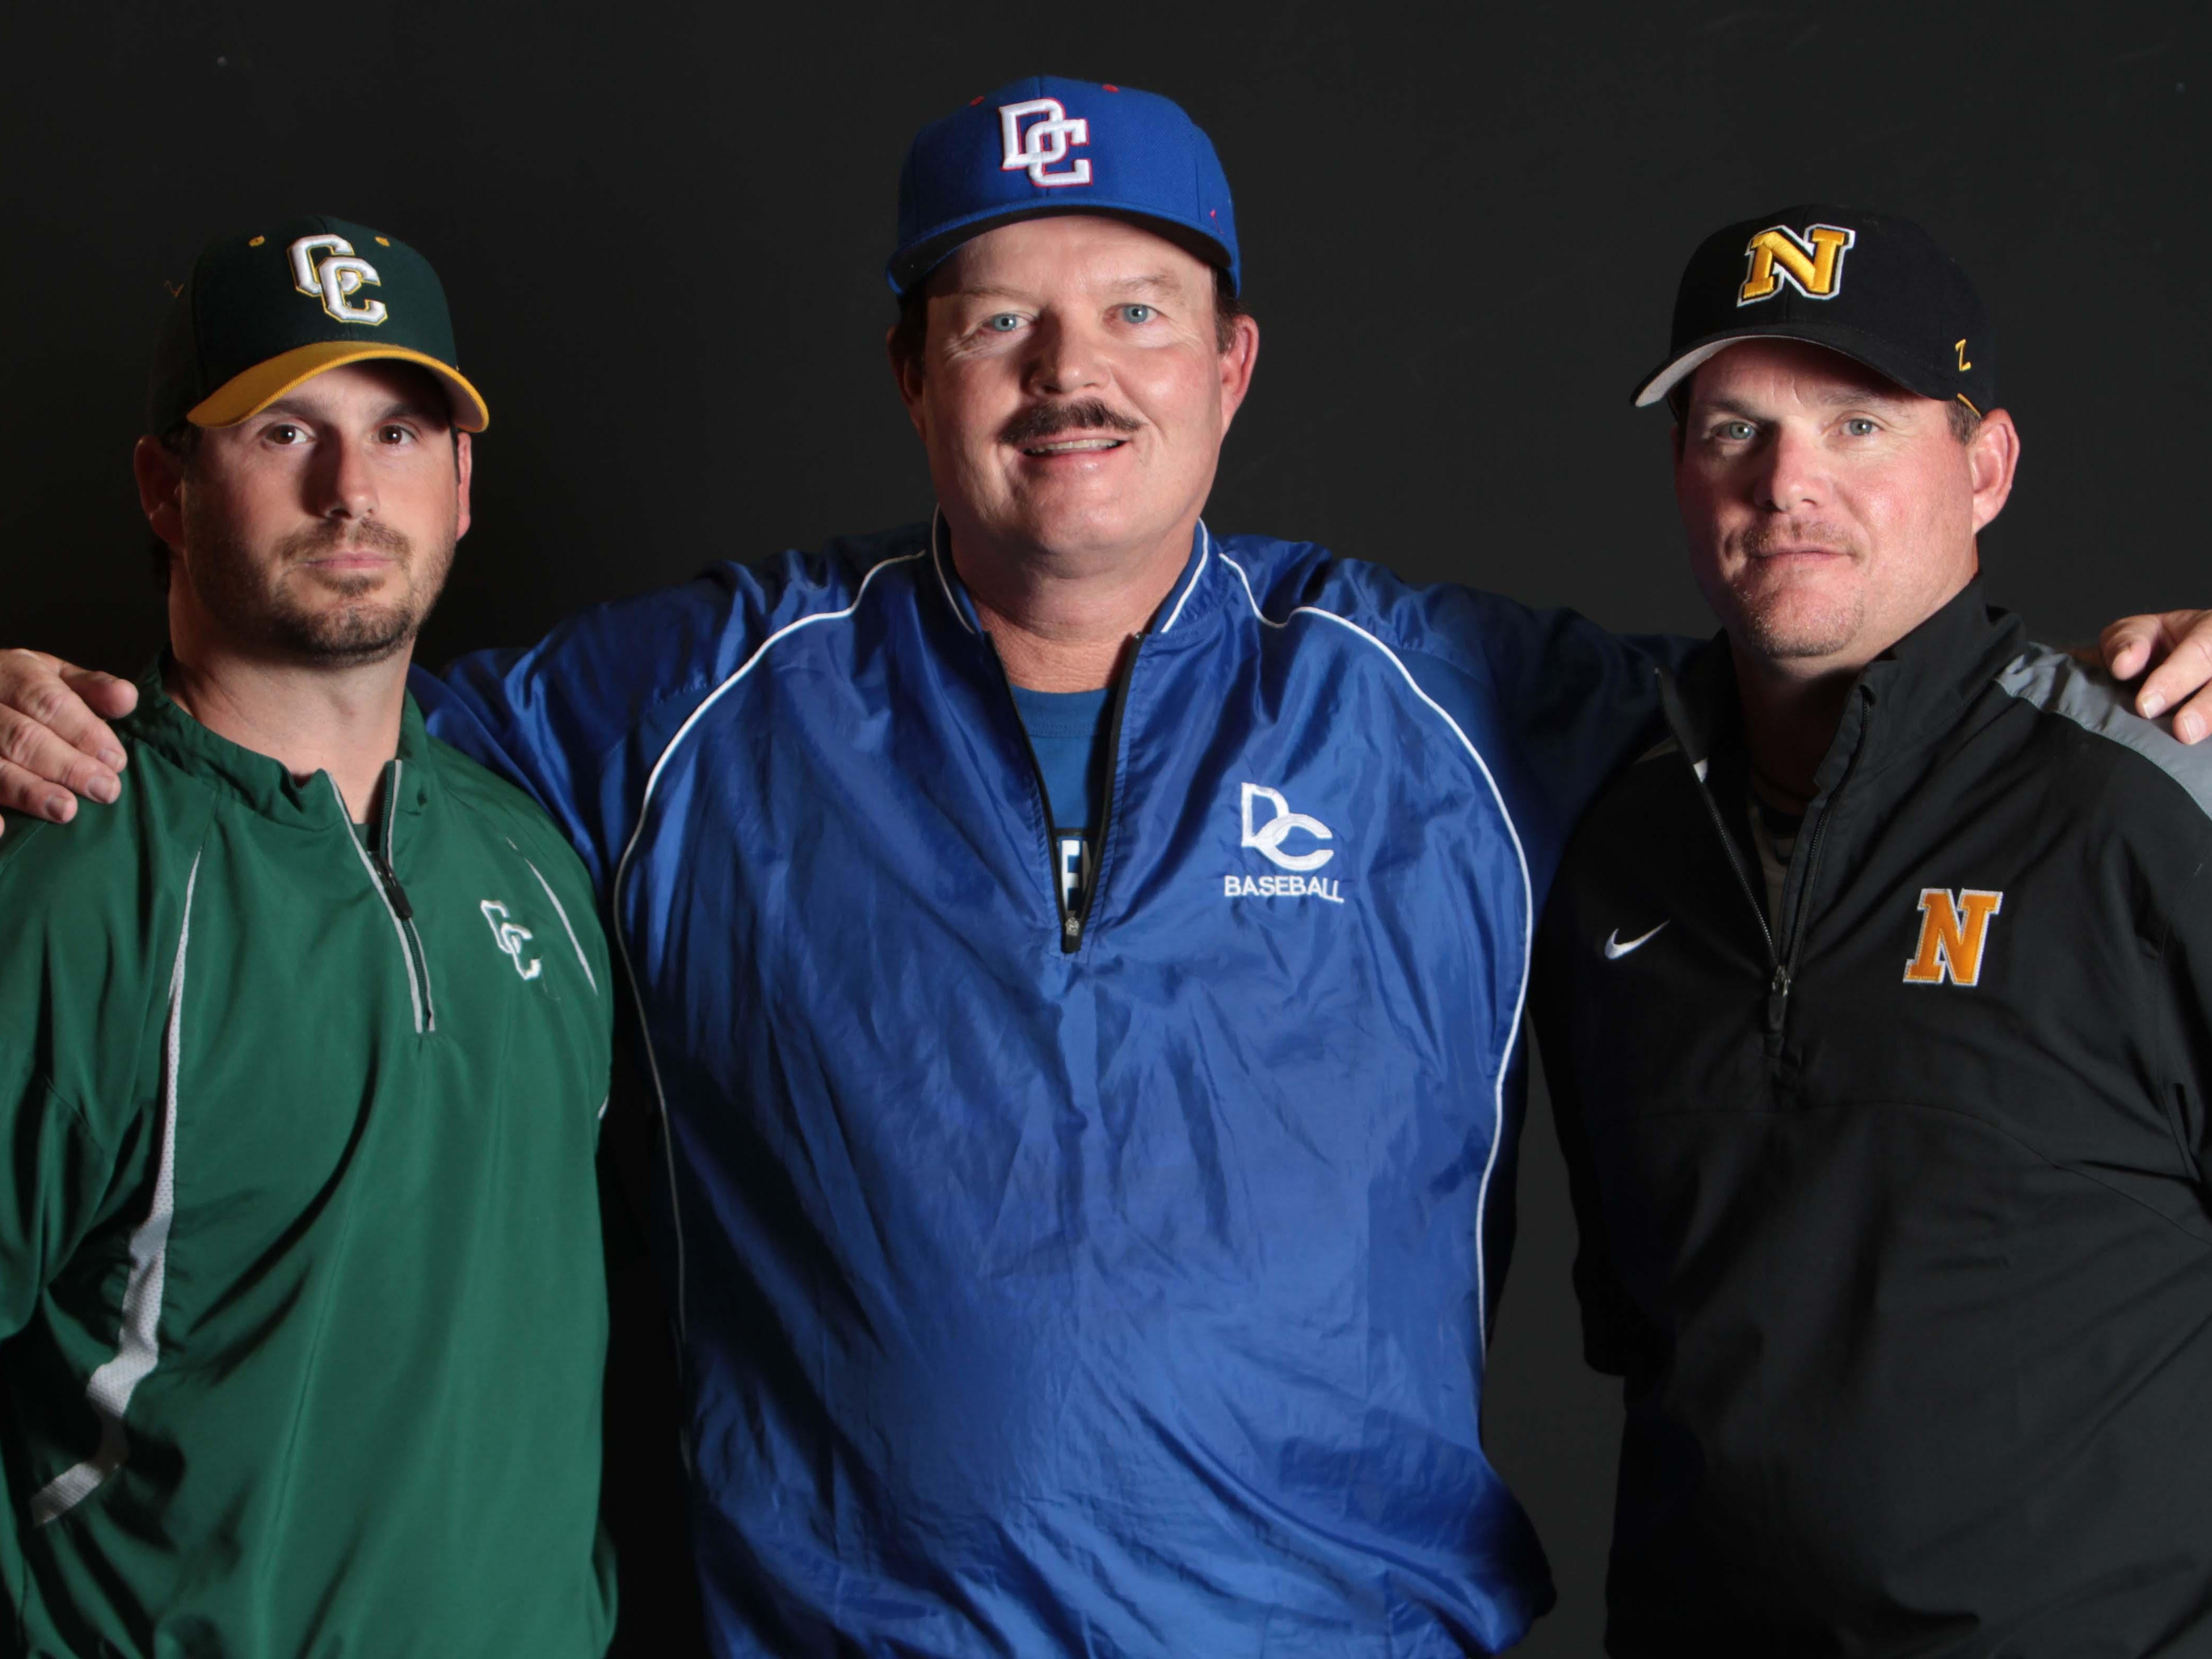 Many of Johnson's former players have gone on to coach careers of their own, including Neville's Paul Guerriero and Cedar Creek's Ben Haddox.